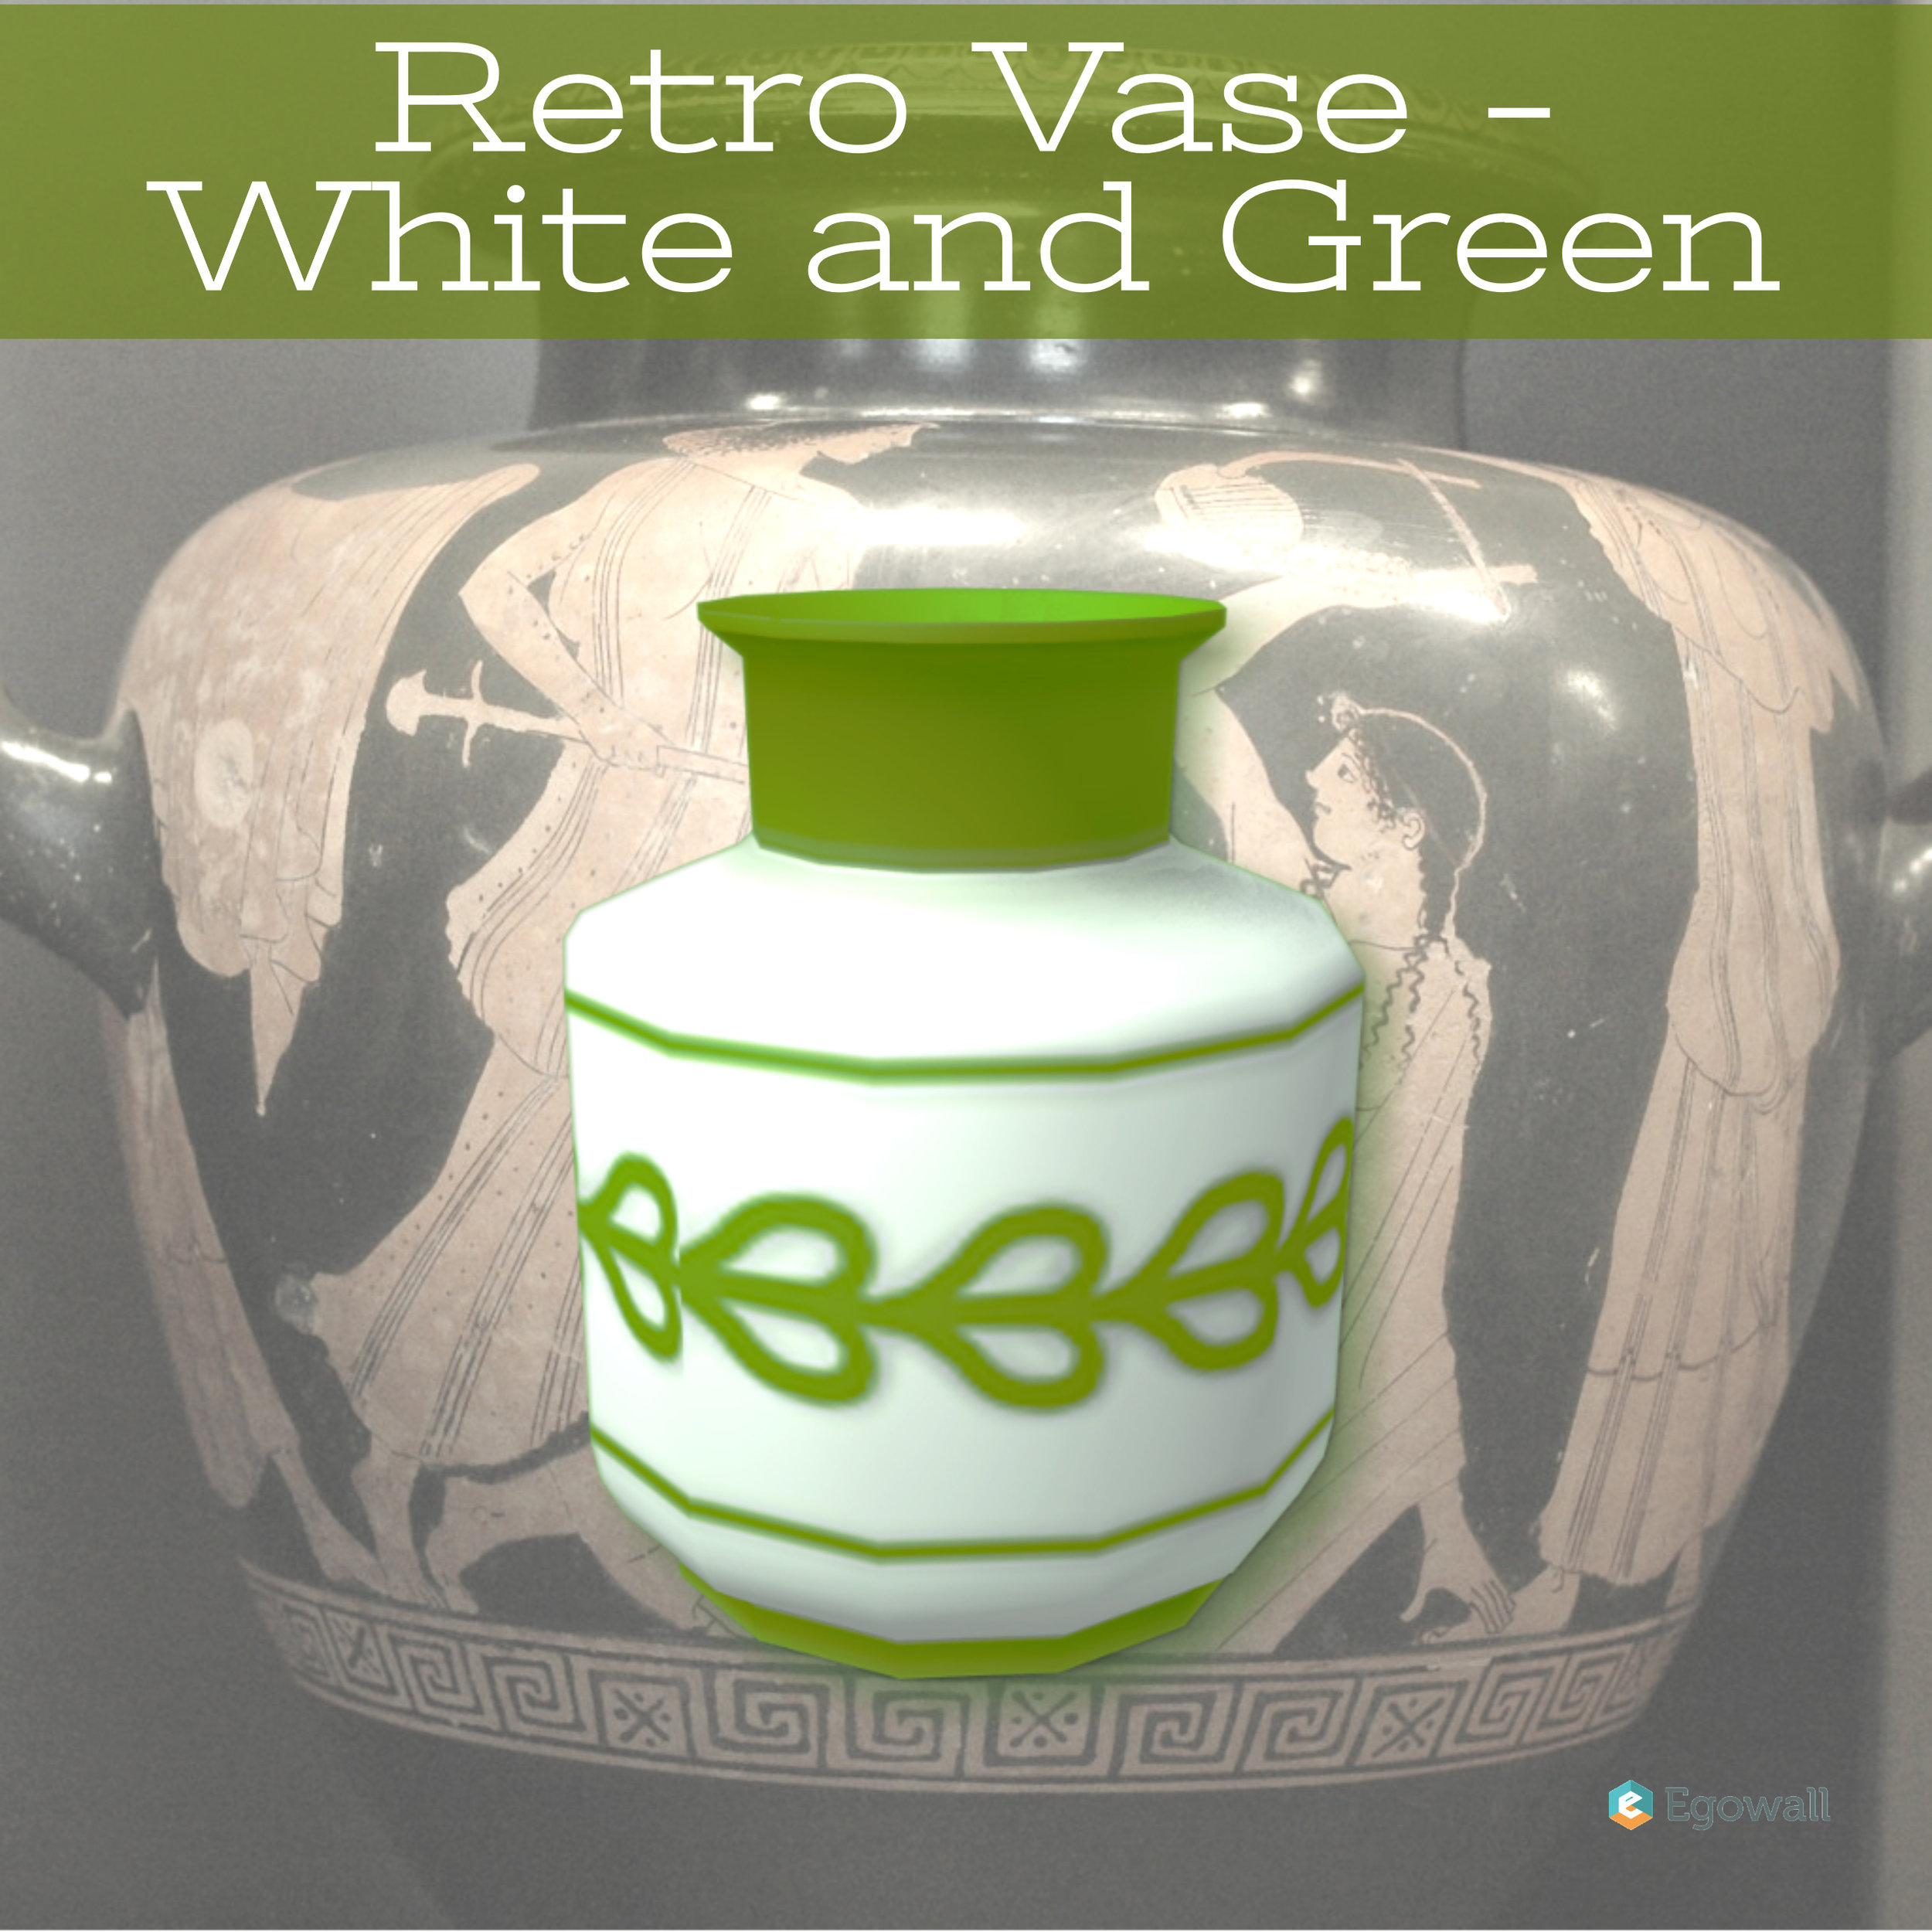 Retro Vase - White and Green.Instagram.jpg